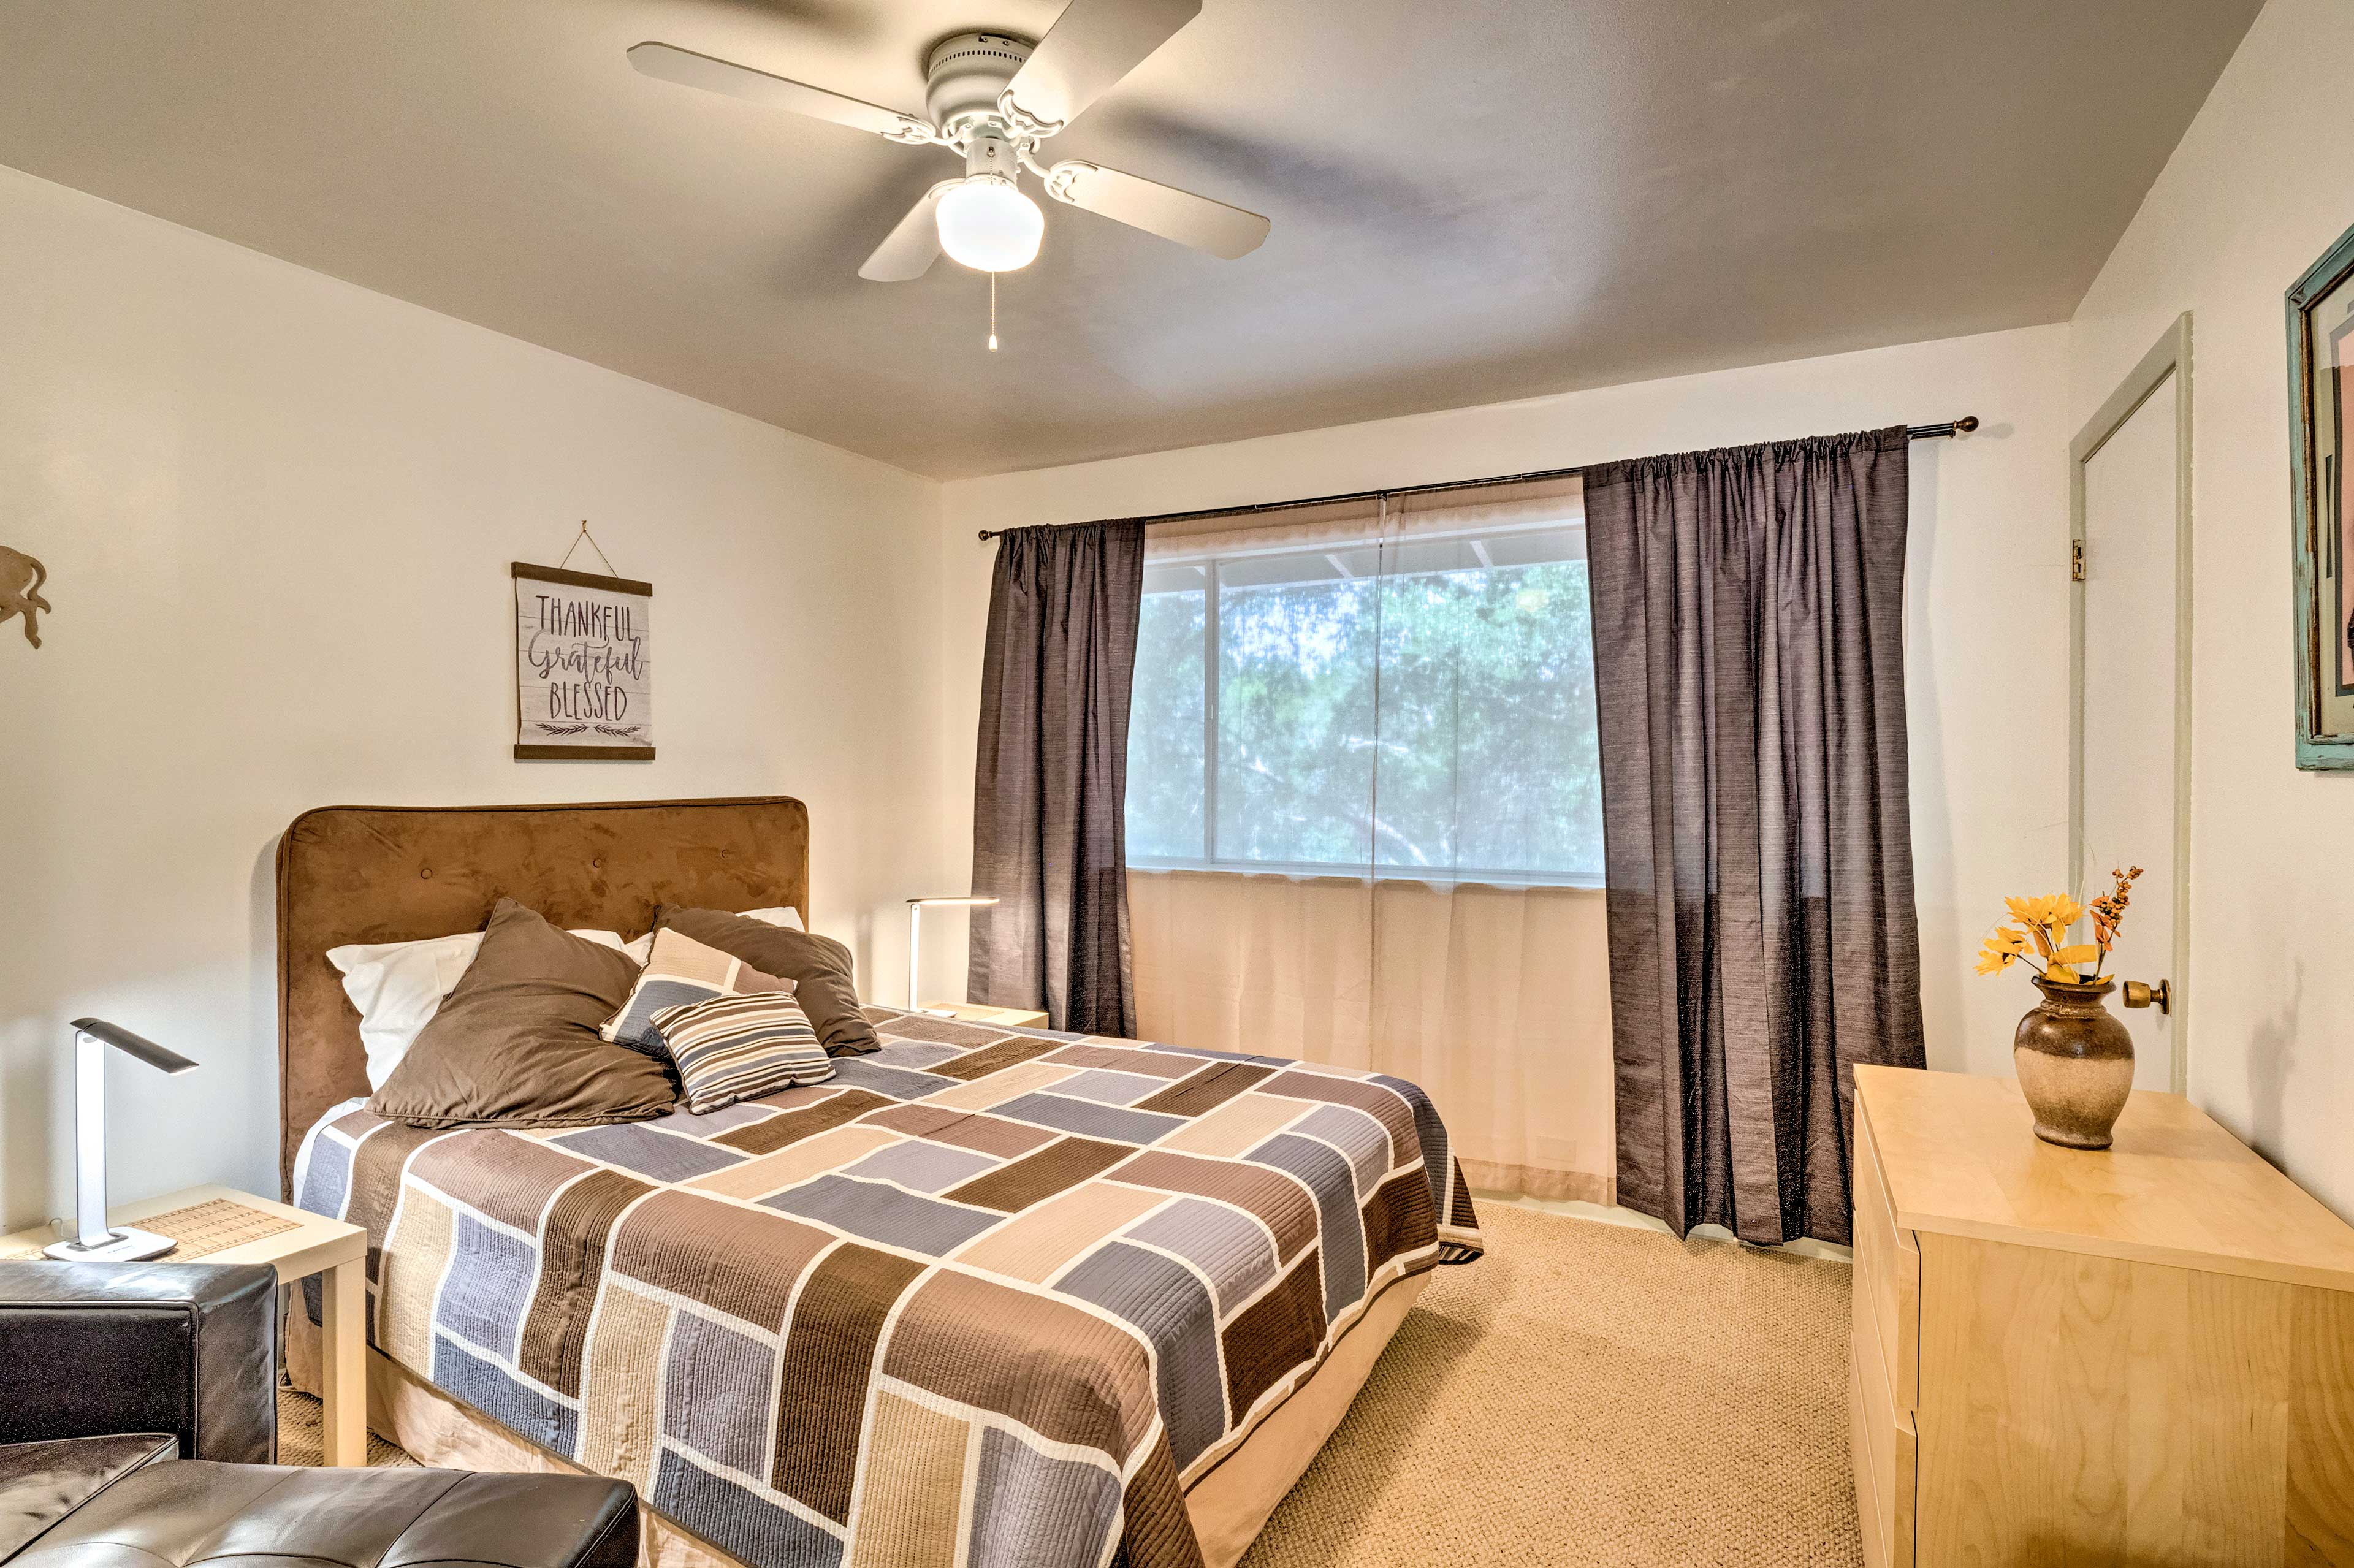 After an adventurous day, sink into the queen bed!